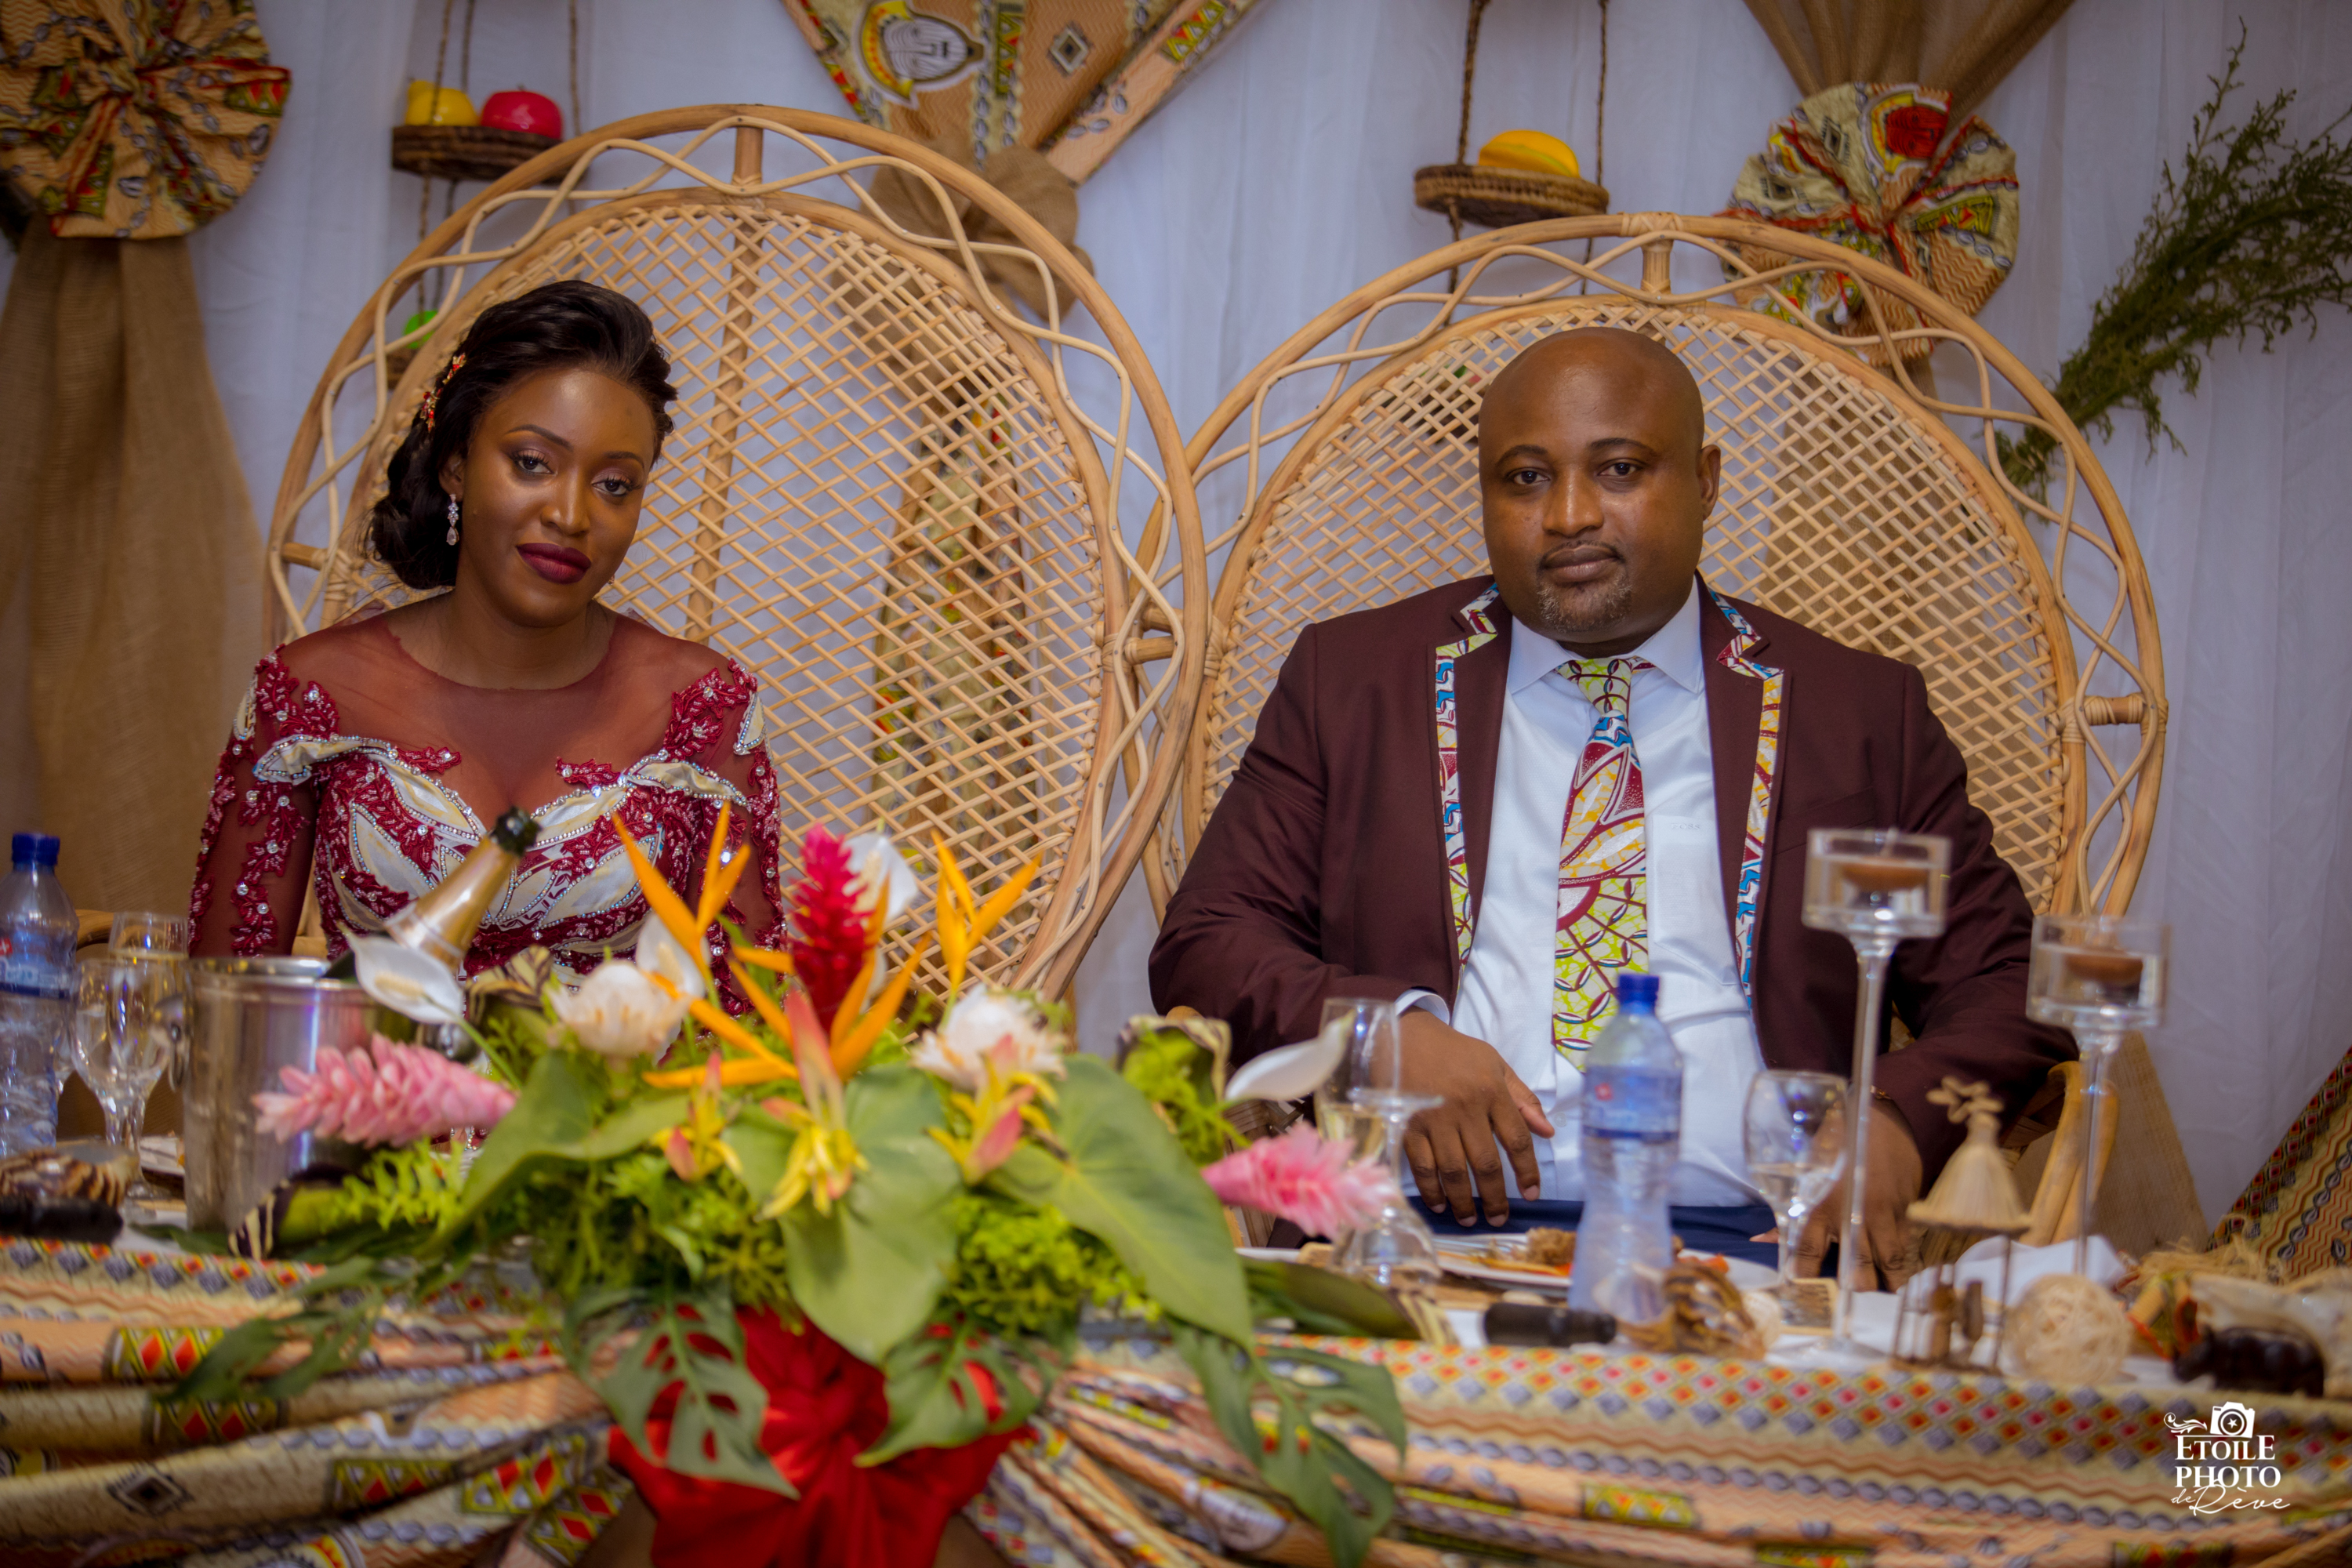 Mariage Traditionnel Congolais D Ornella Et Coco By Agence